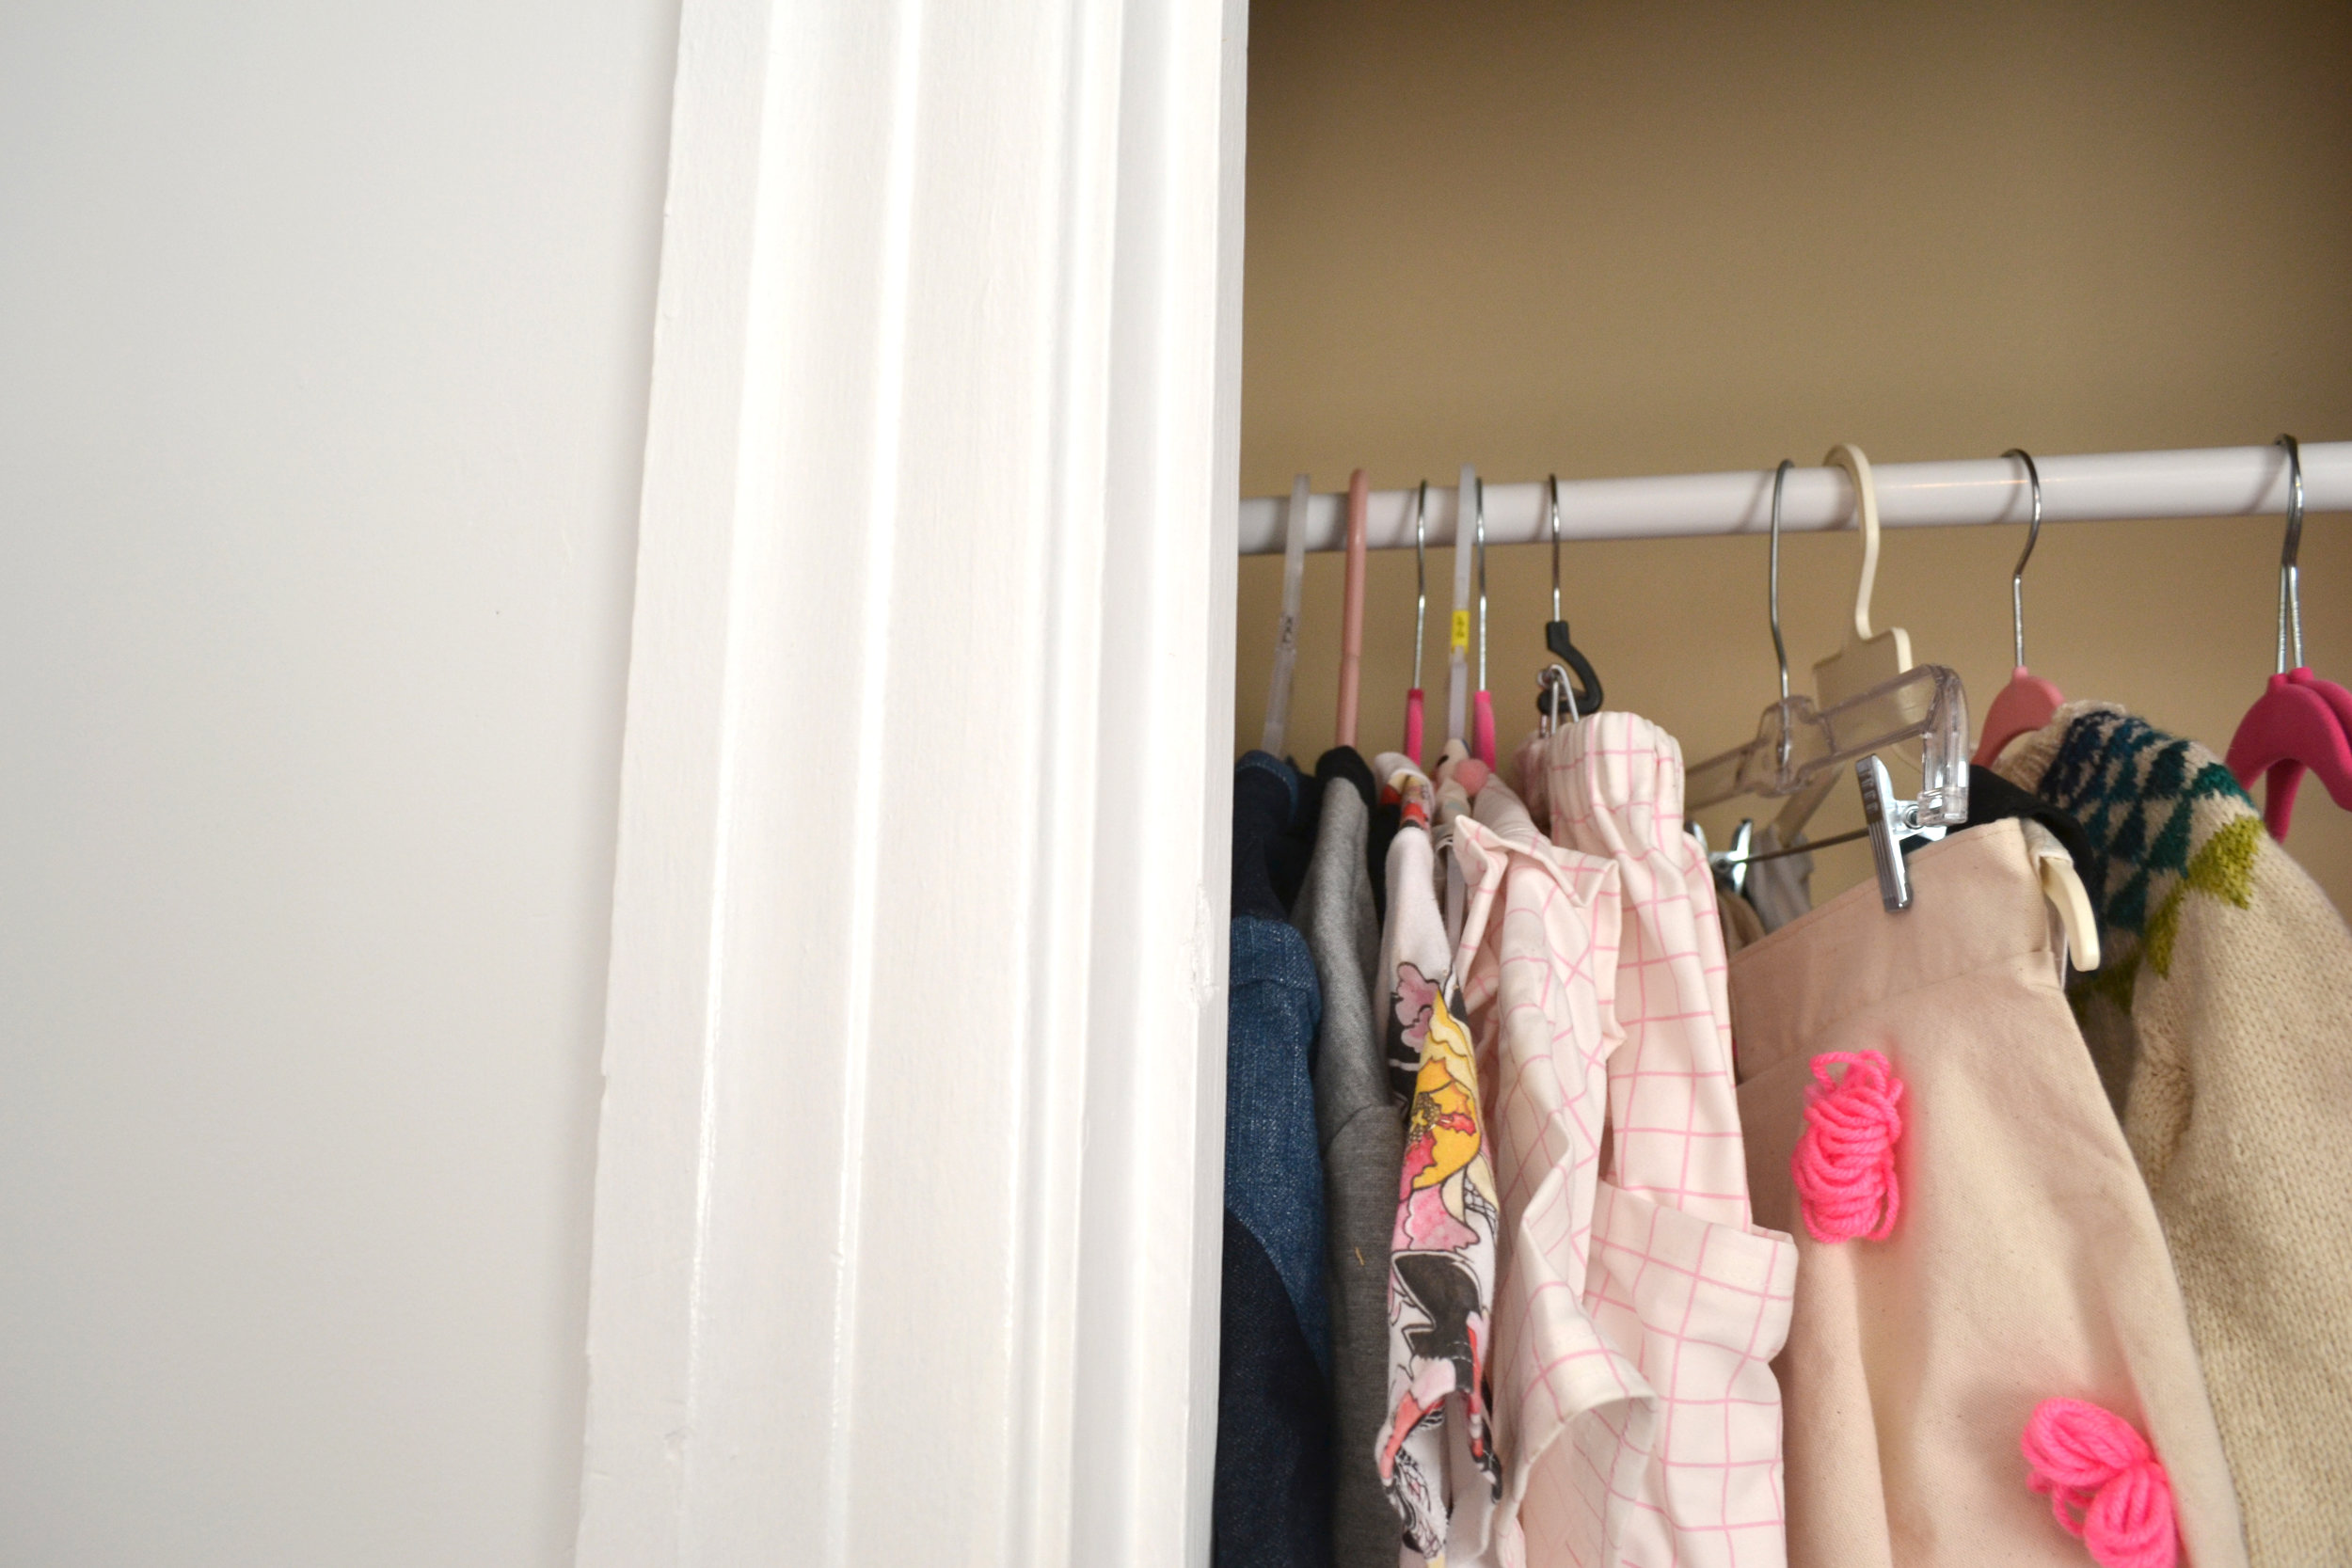 Another thing I absolutely love about my space in the house is the closet storage space I have in this room. I can put away all the ugly fabric storage and stuff that doesn't need to be out all the time and have a nice clean workspace when I need it. I can also hang up all of the samples I sell at craft shows which keeps them nice and tidy.